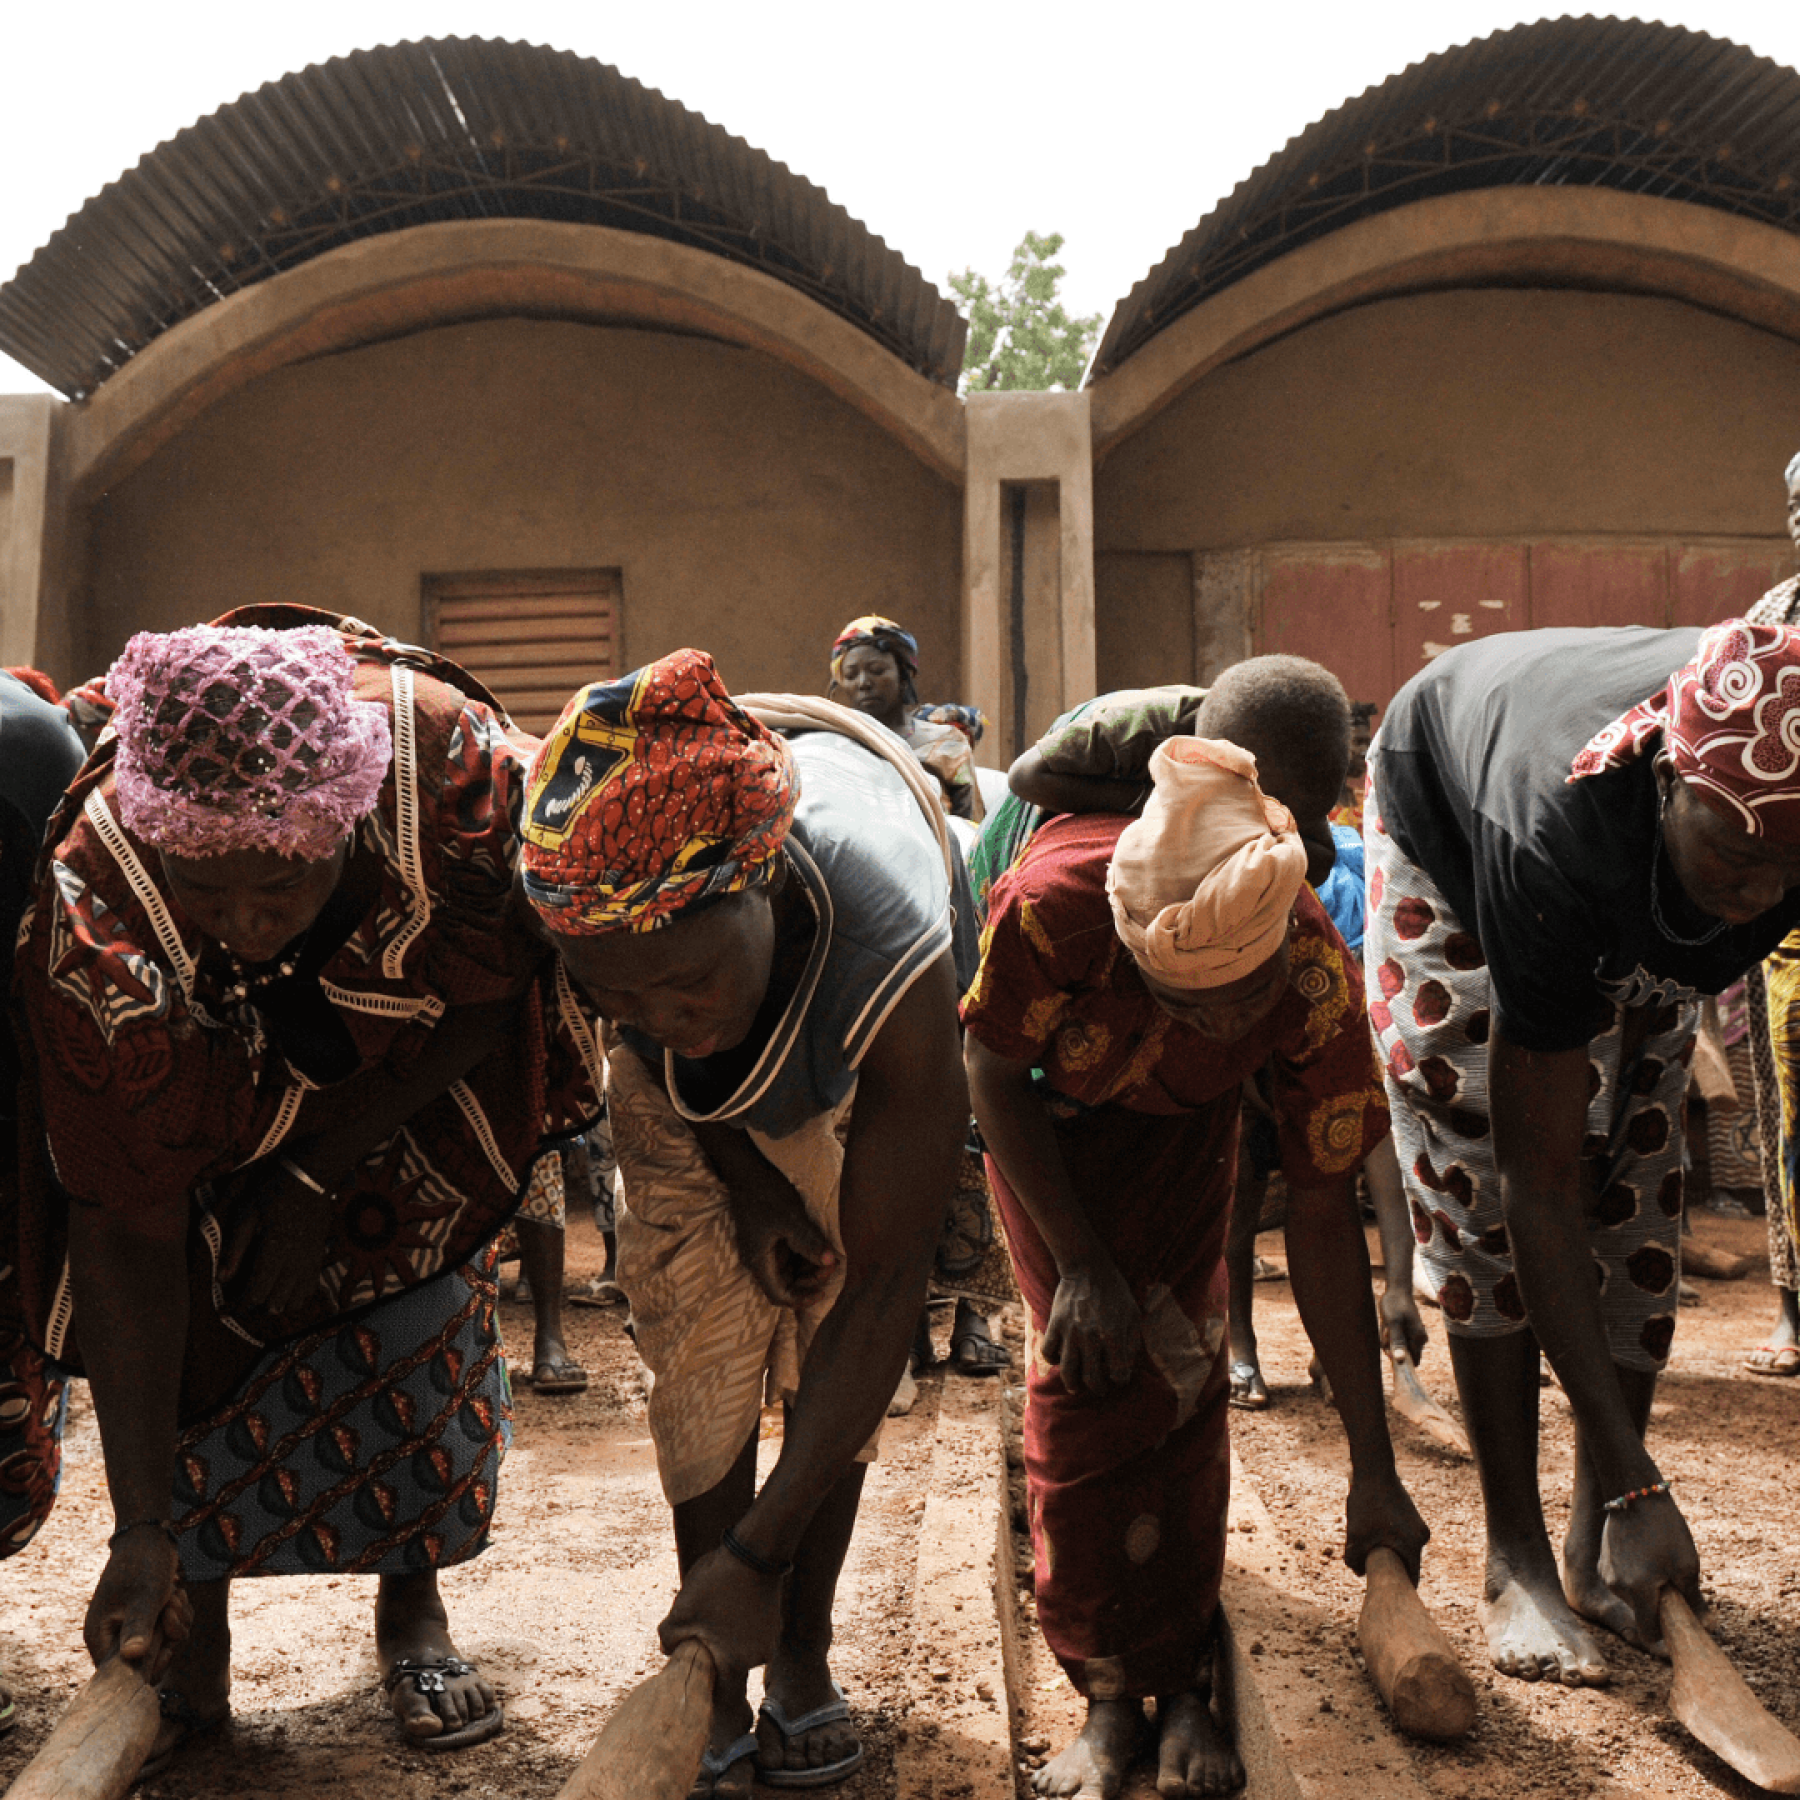 Women stamp the clay floor in front of the teachers' houses.